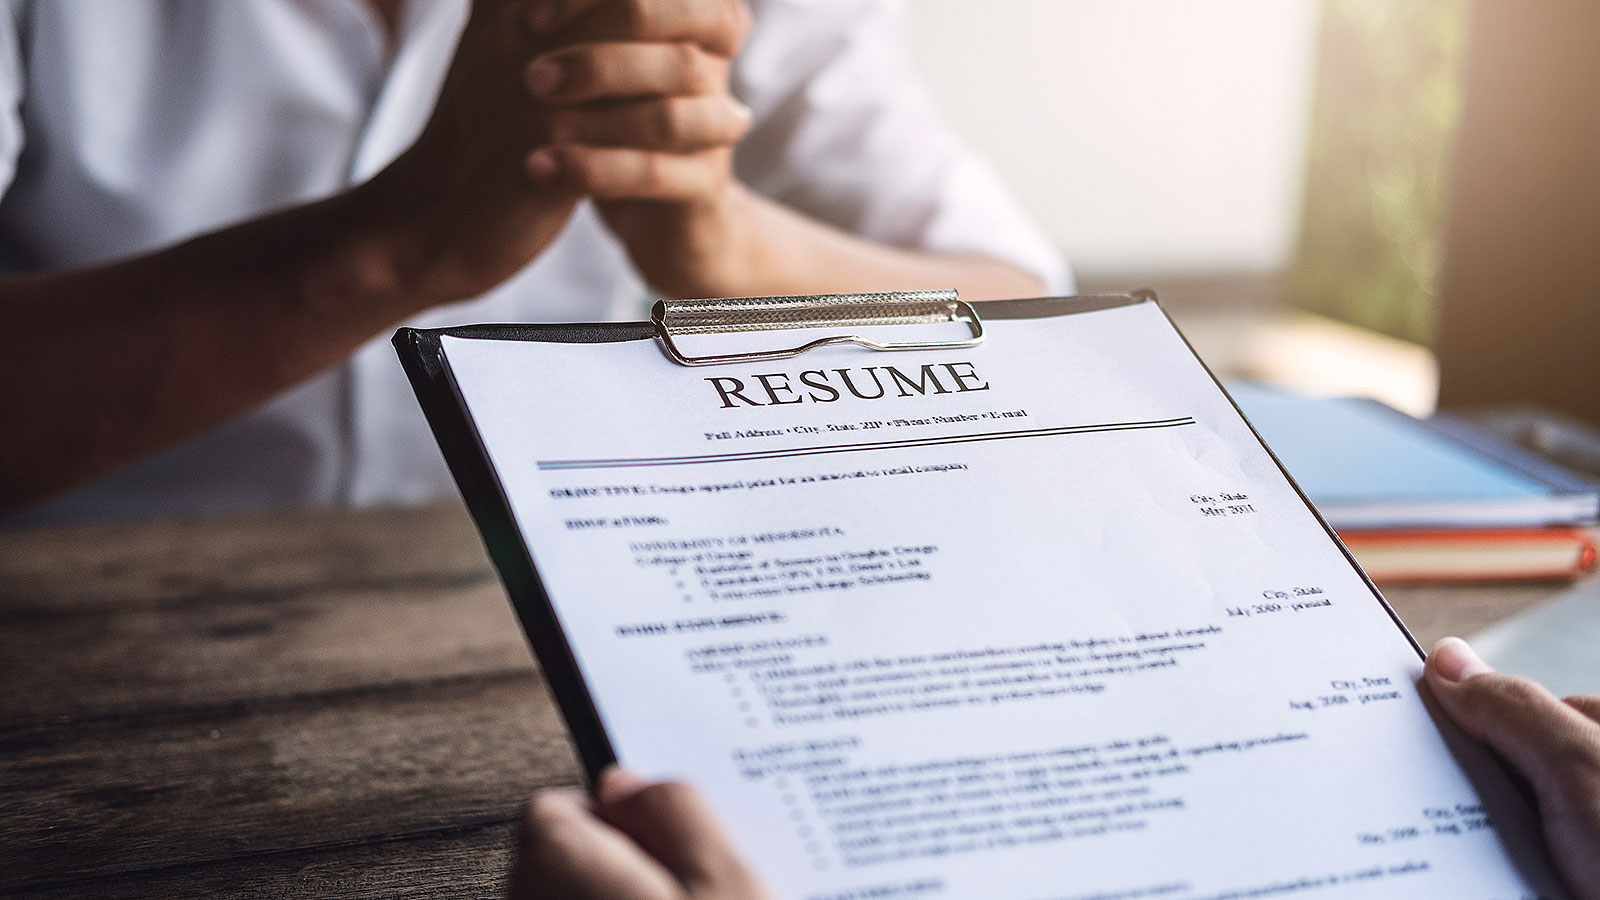 5 skills you should highlight on your resume